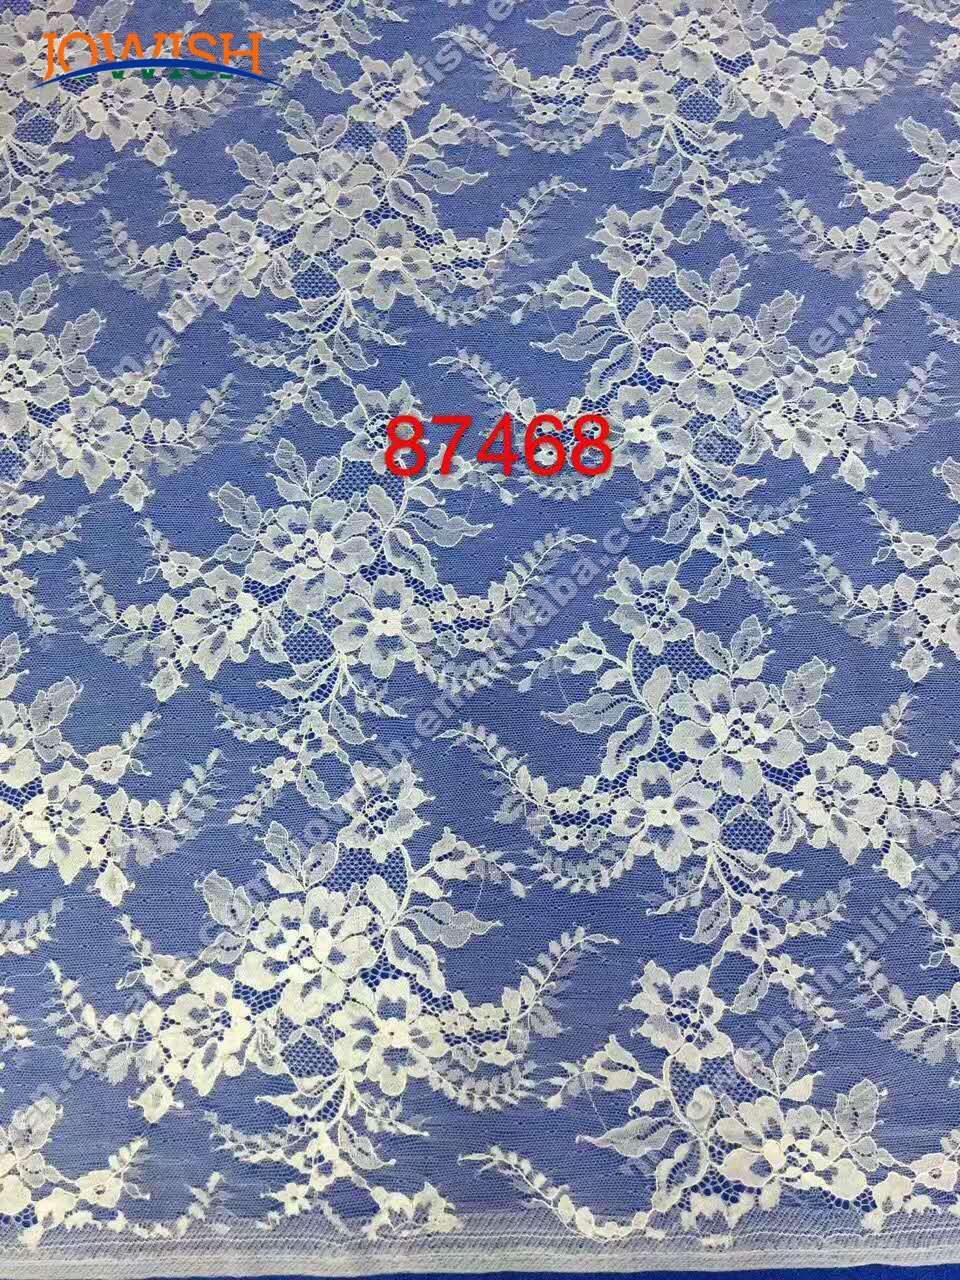 2pcs  Lot French Eyelash lace fabric 150 X 300cm  diy  lace fabric embroidery clothes wedding dress accessories